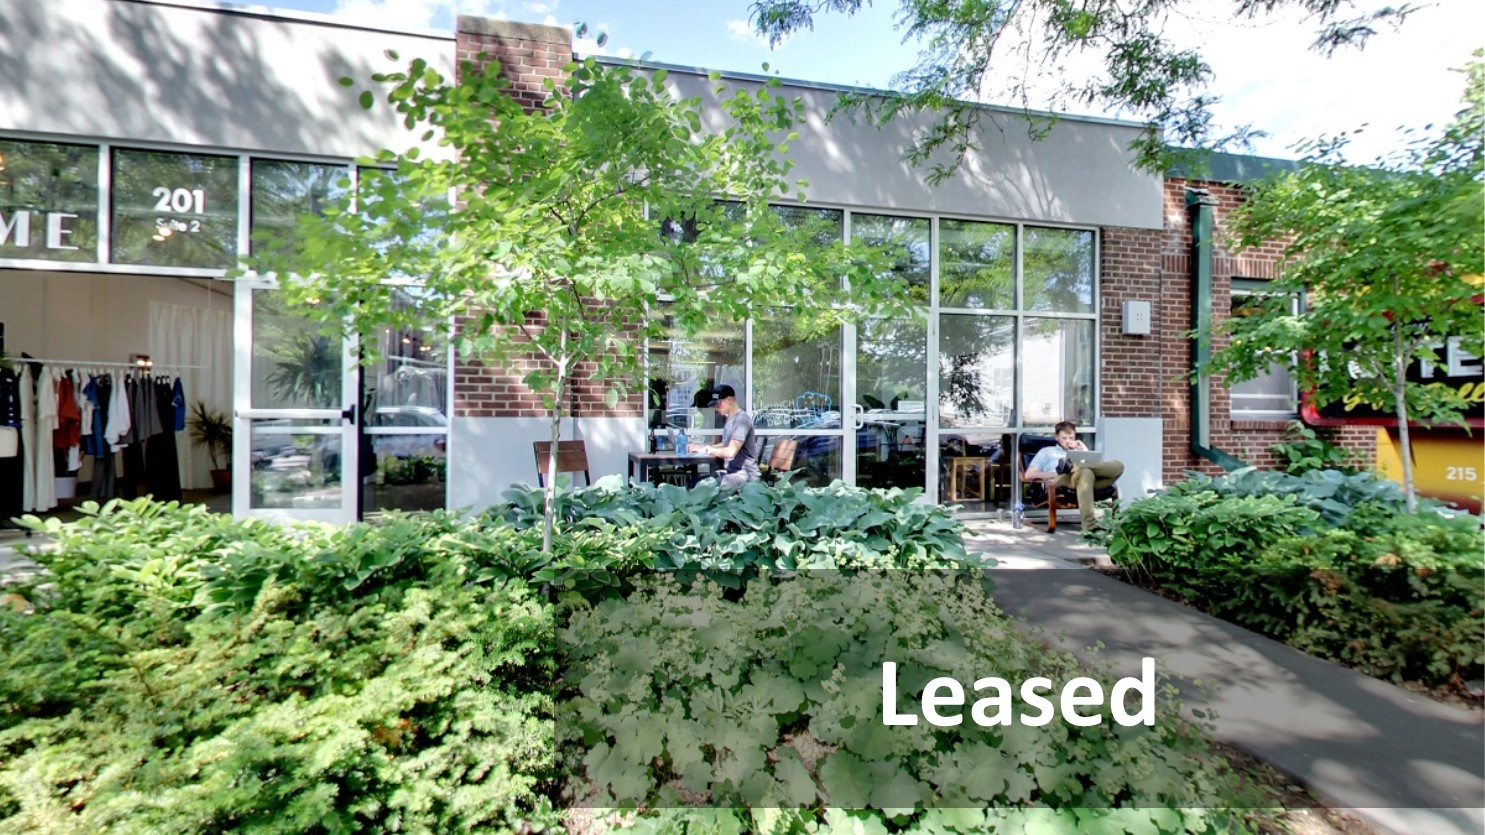 201 6th st se, leased